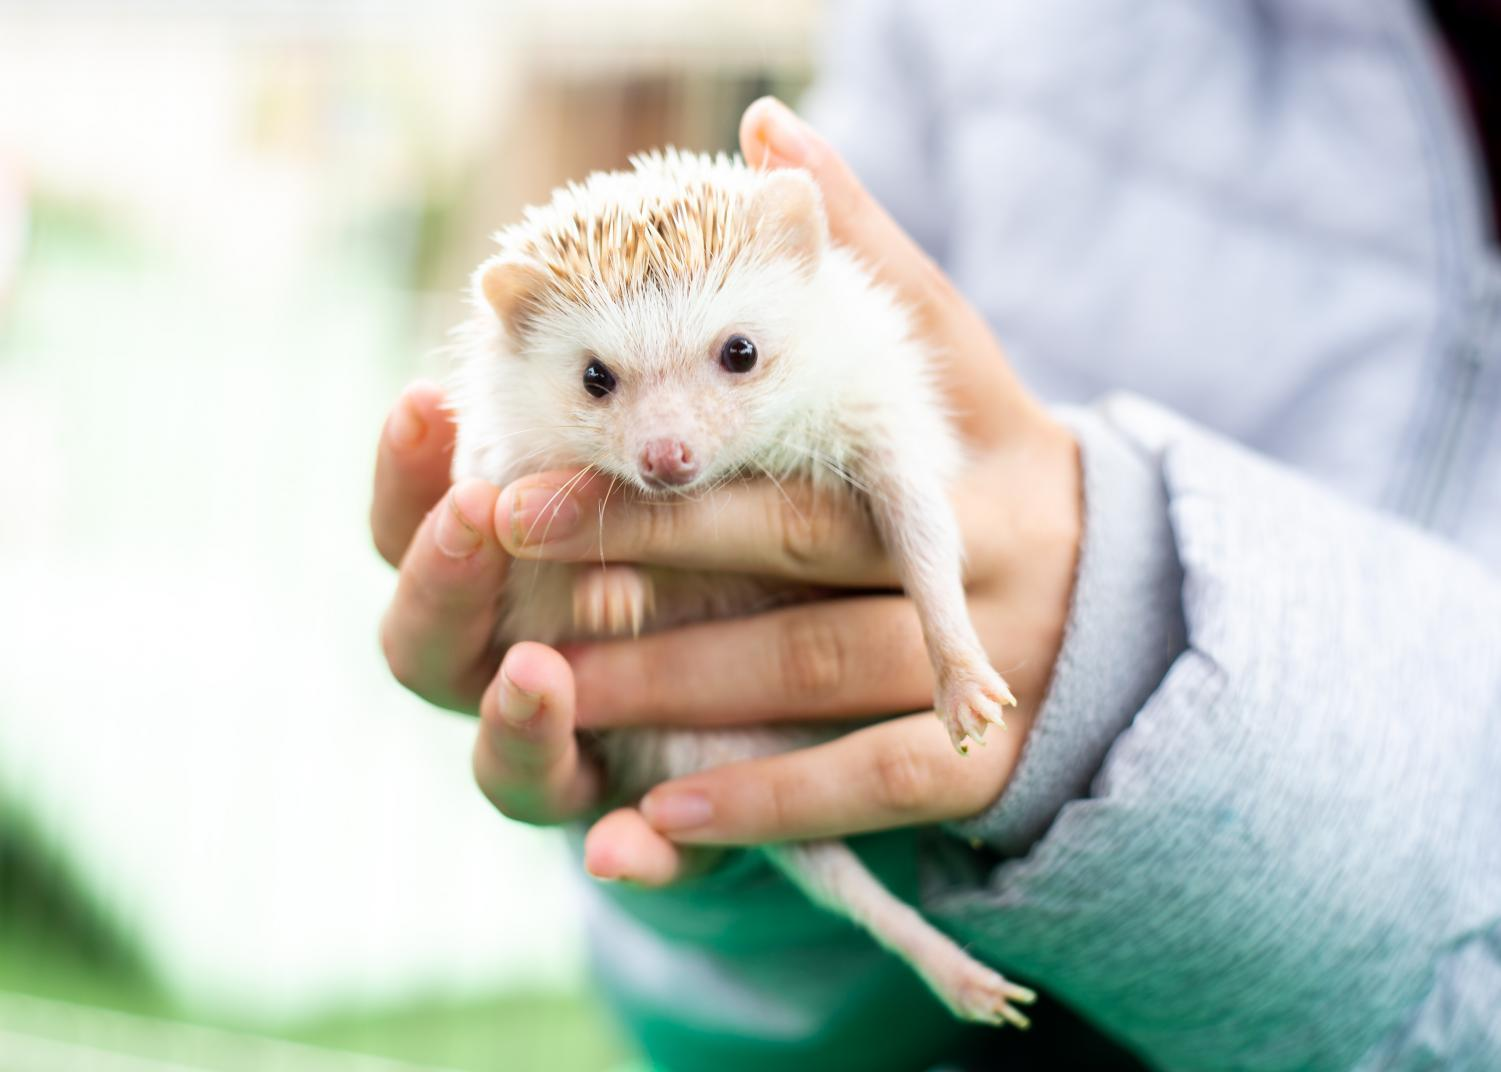 A+pet+zoo+worker+holds+Cactus+Jack%2C+a+nine-month-old+hedgehog.+%22He+isn%27t+as+prickly+as+you+think%2C%22+the+worker+said.